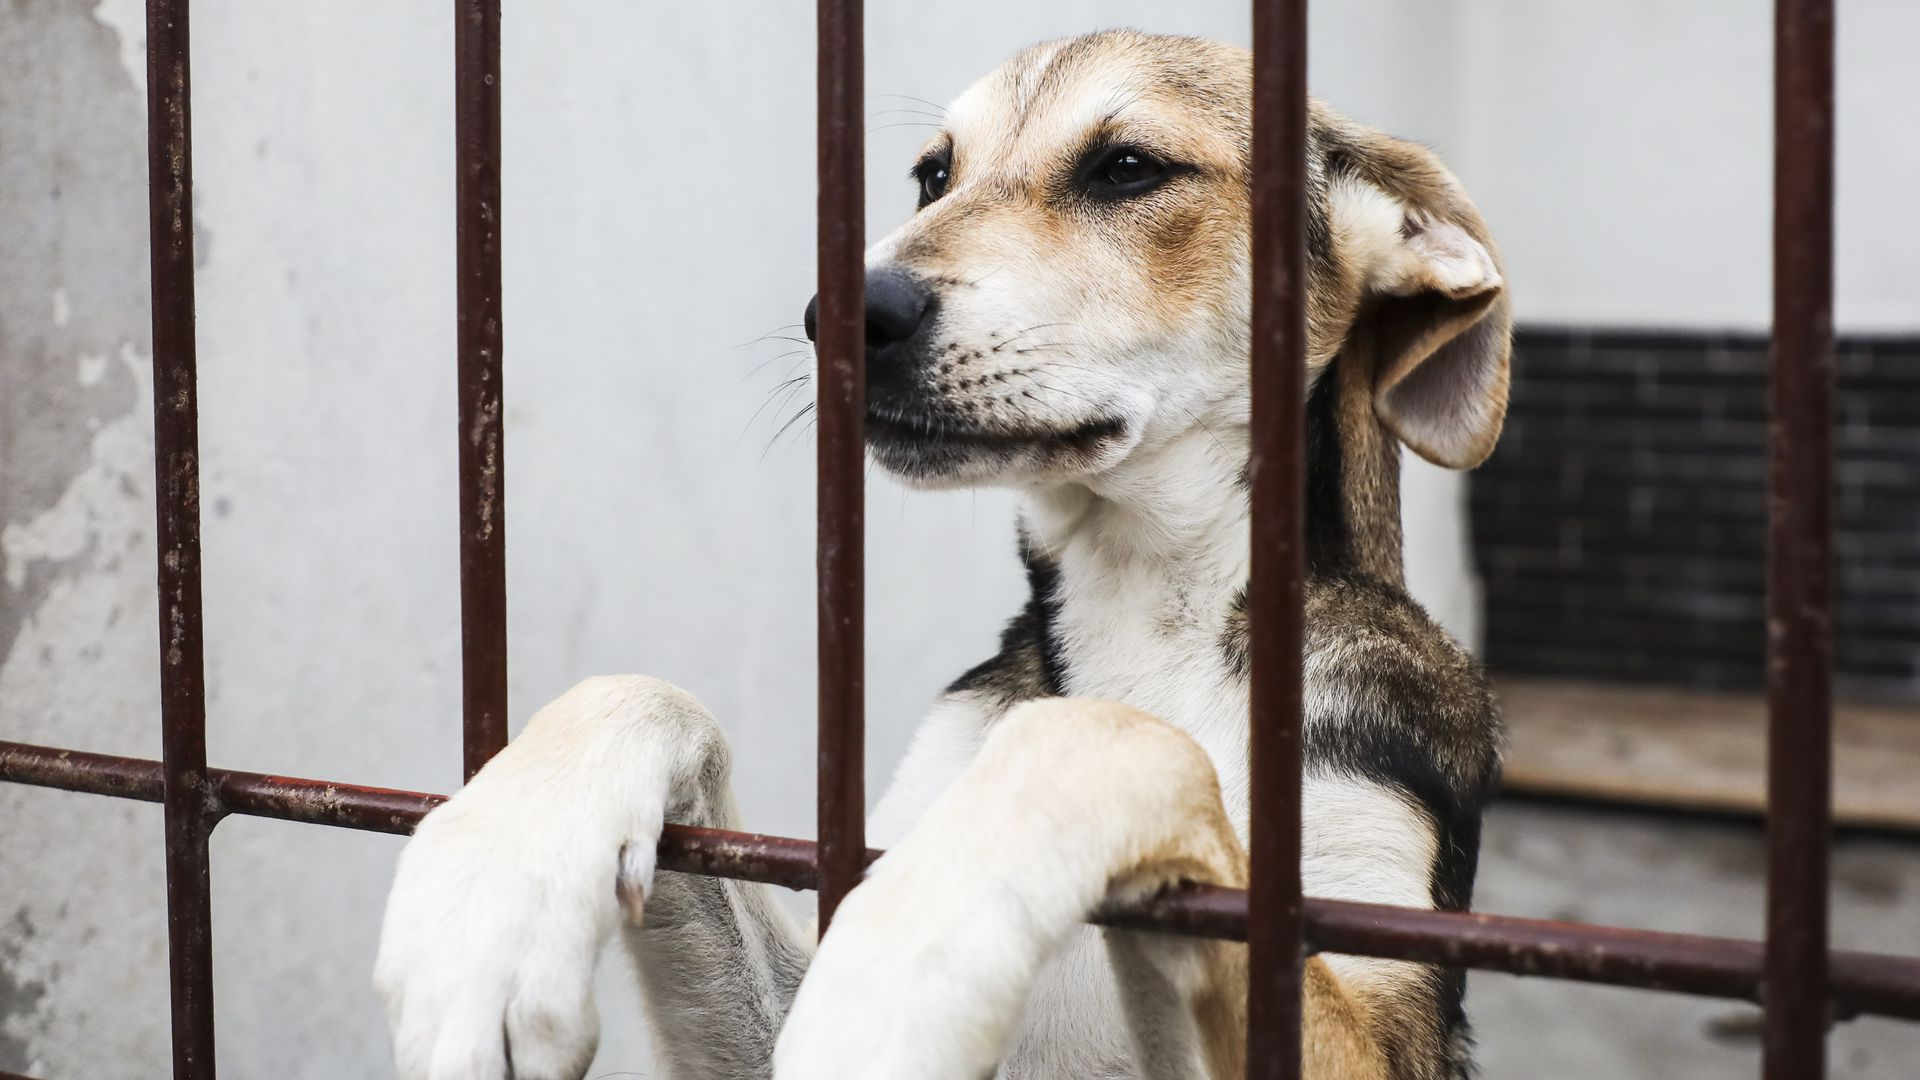 An animal in a cage with its paws sticking out.